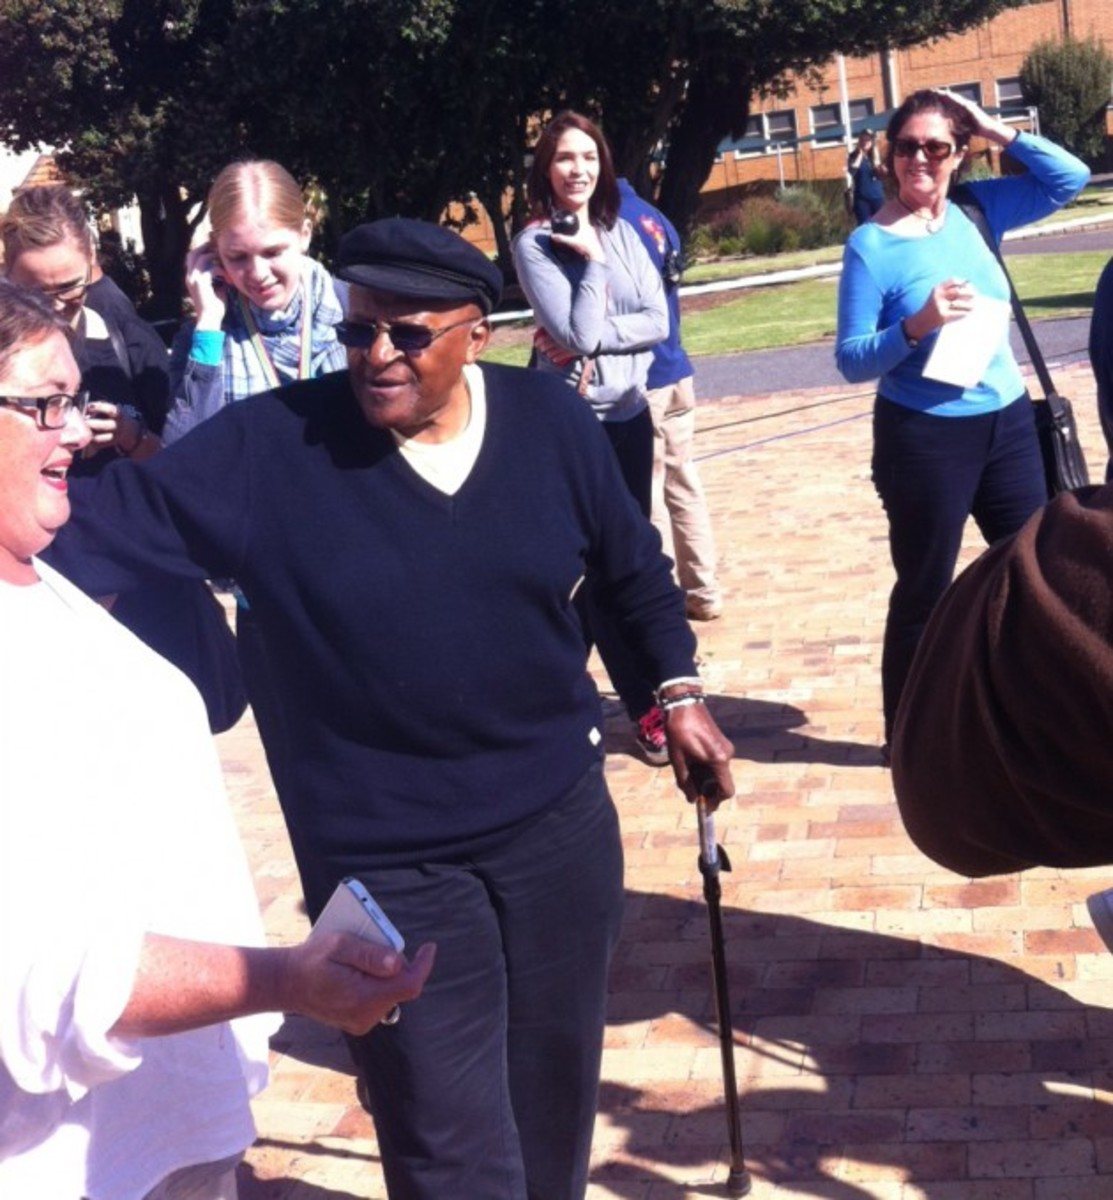 Anglican Archbishop Desmond Tutu and his wife Leah were ushered to the front of a long queue at the Milnerton High School today – but fellow voters in the seaside Cape Town suburb didn't seem to mind. Tutu (82) was barely recognisable without his pur